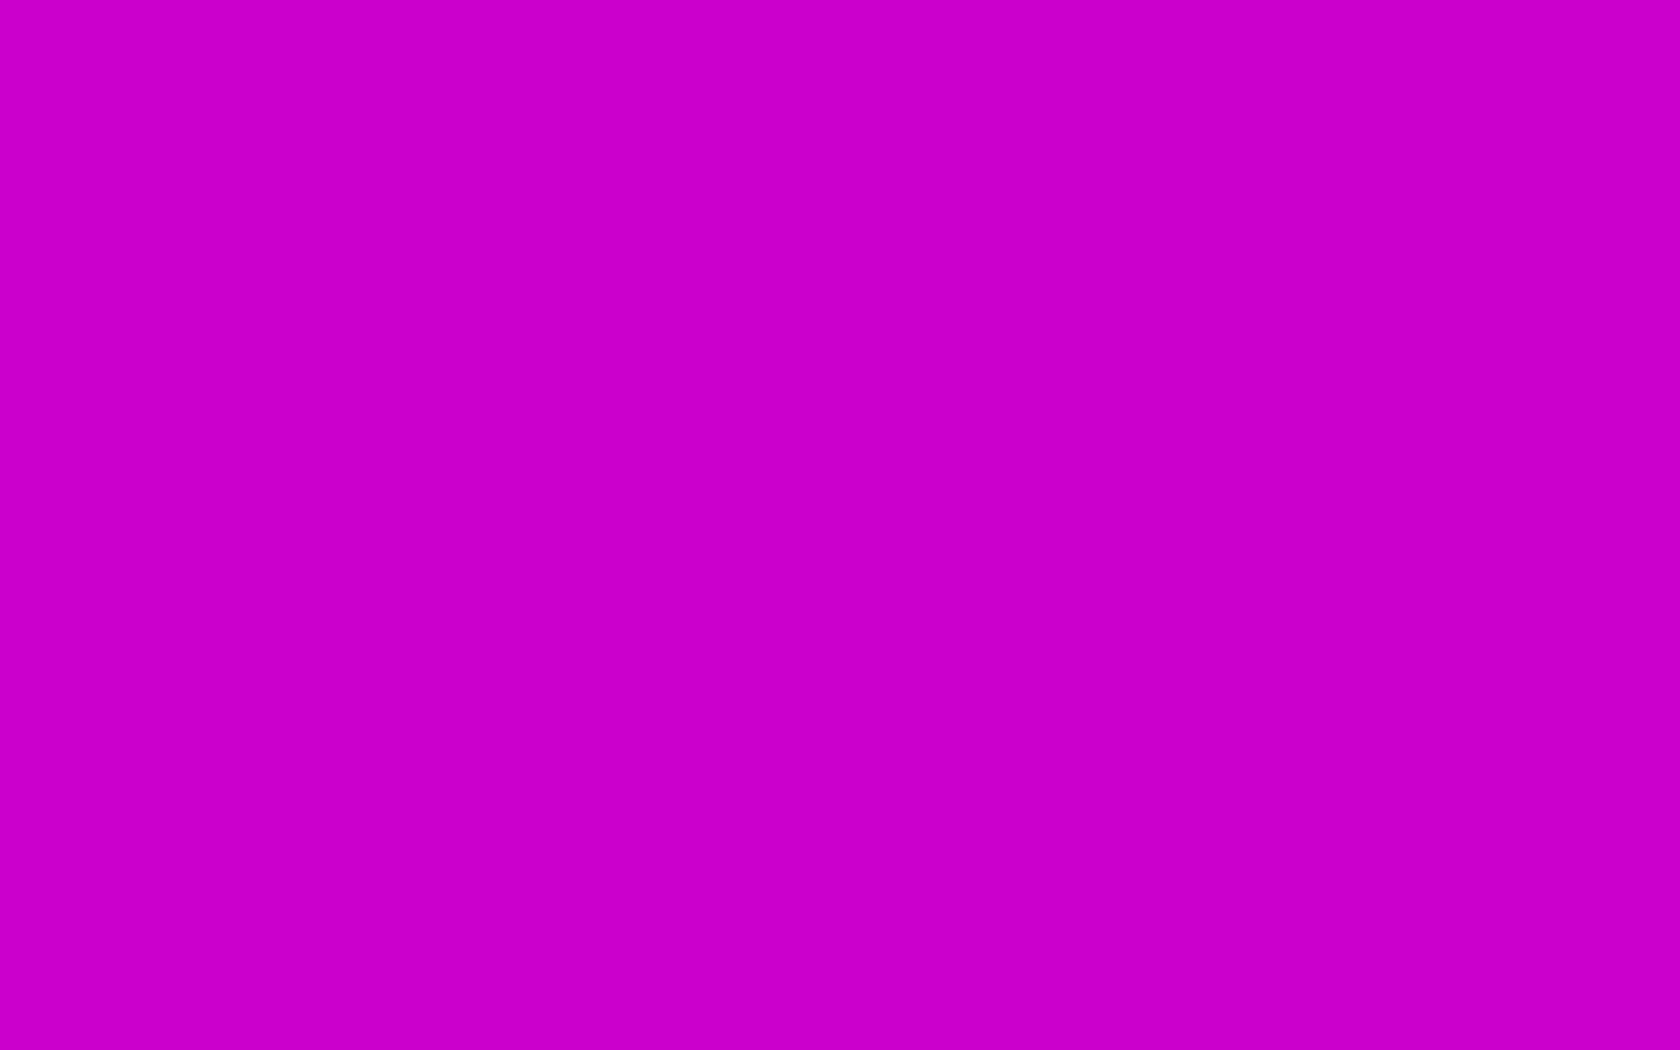 1680x1050 Deep Magenta Solid Color Background